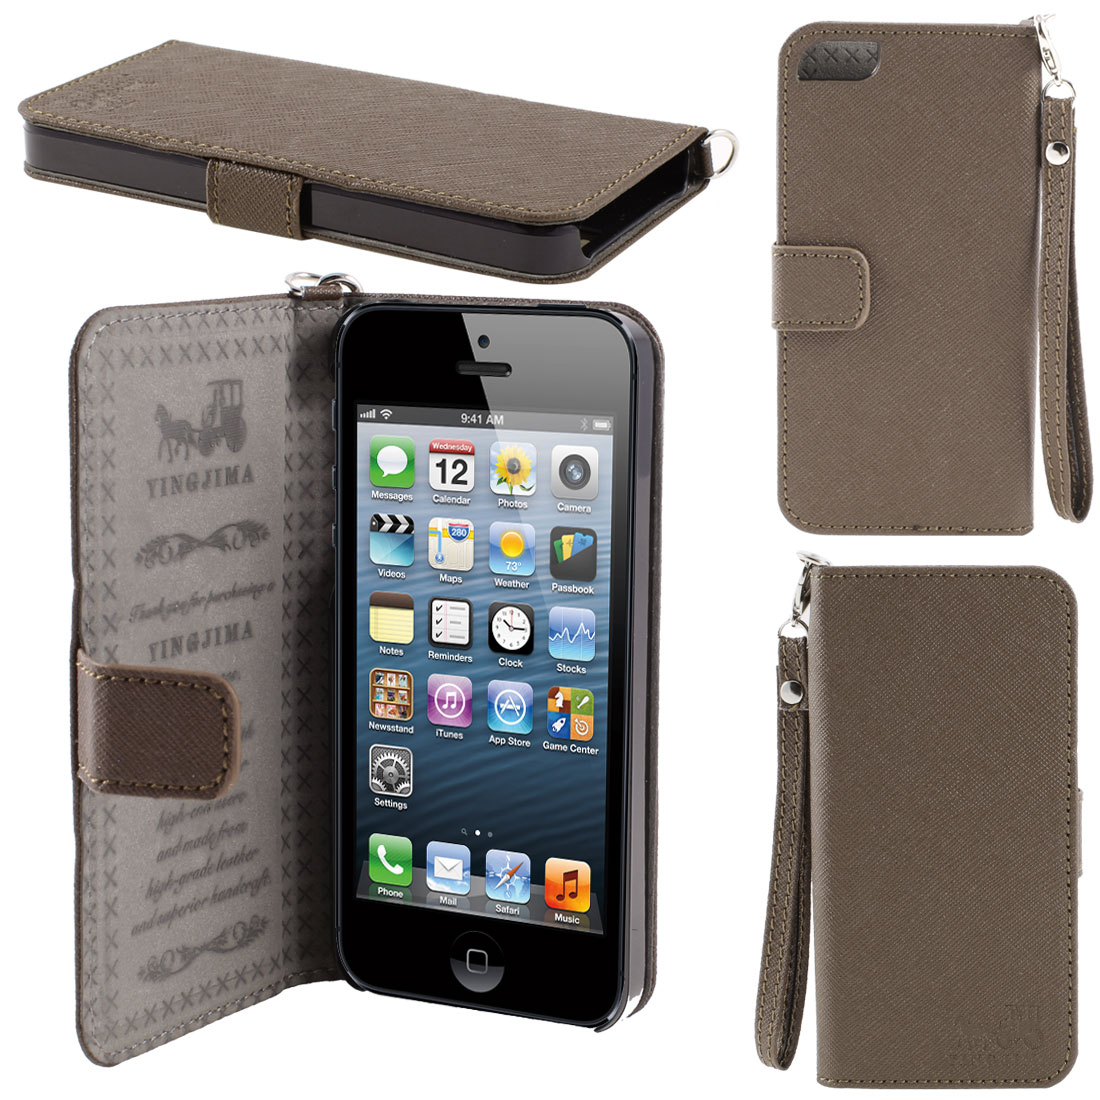 Coffee Color Faux Leather Magnetic Flip Case Cover Pouch Holder for iPhone 5 5G